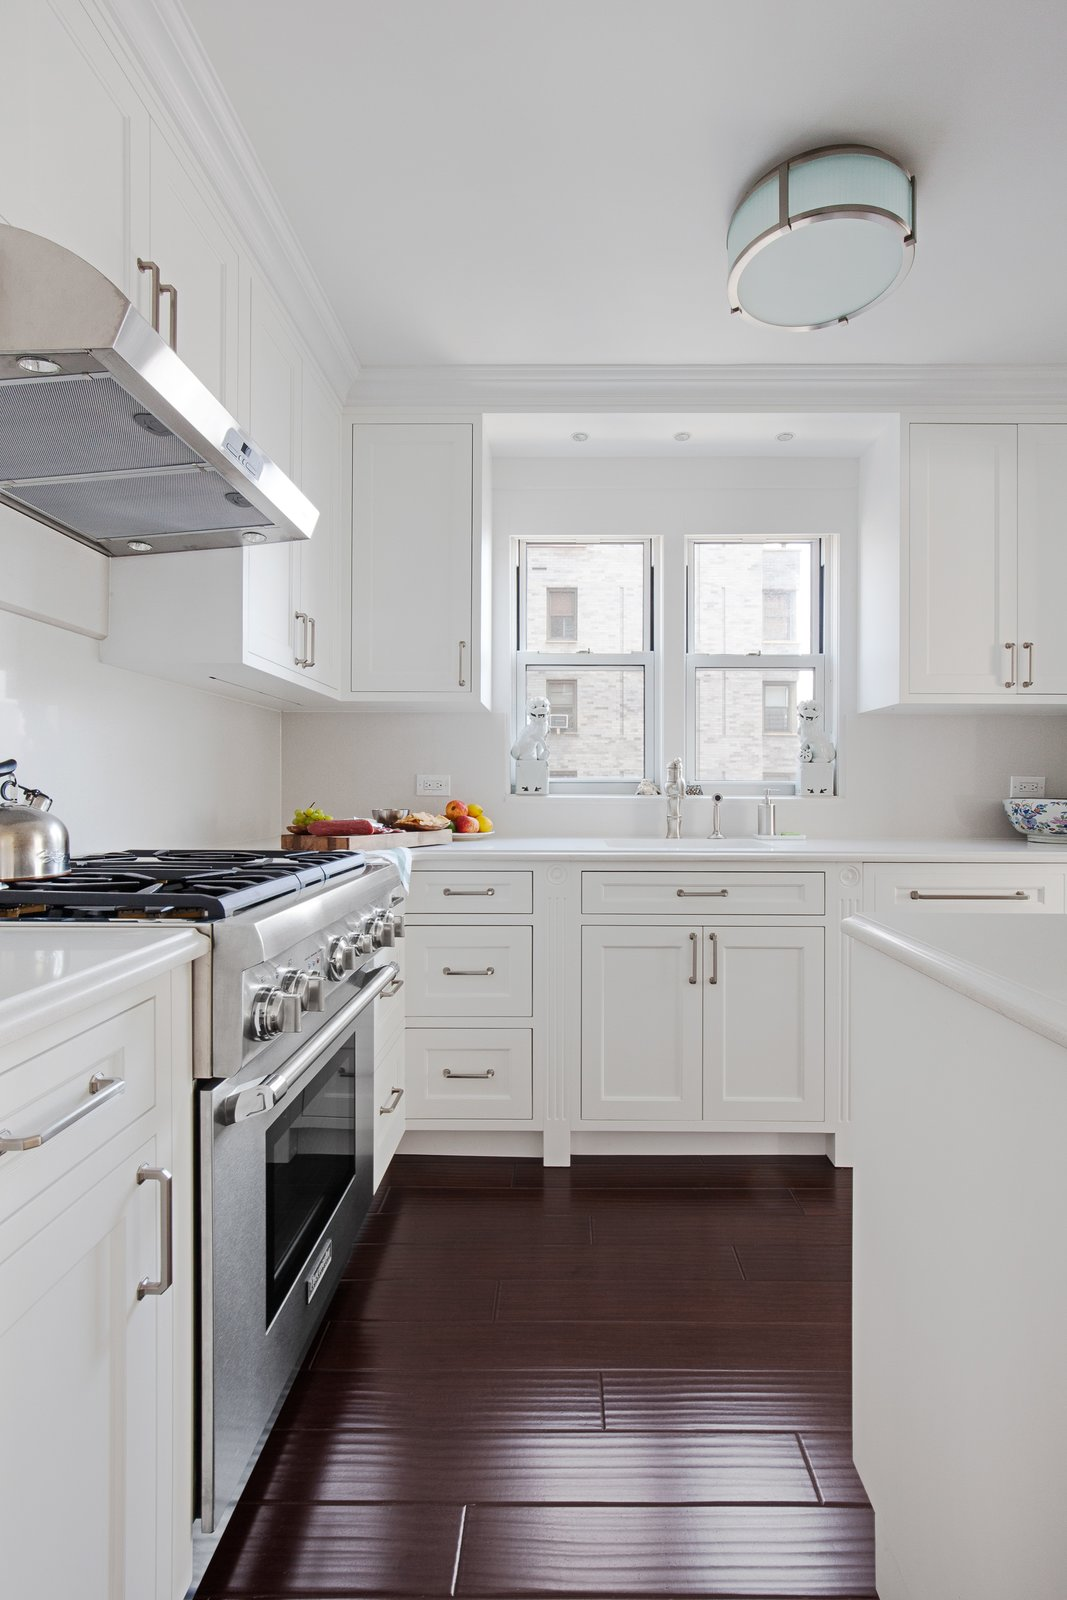 Kitchen, White Cabinet, and Dark Hardwood Floor  AN ART-FILLED APARTMENT RENOVATION 40 YEARS IN THE MAKING! by Pixy Interiors